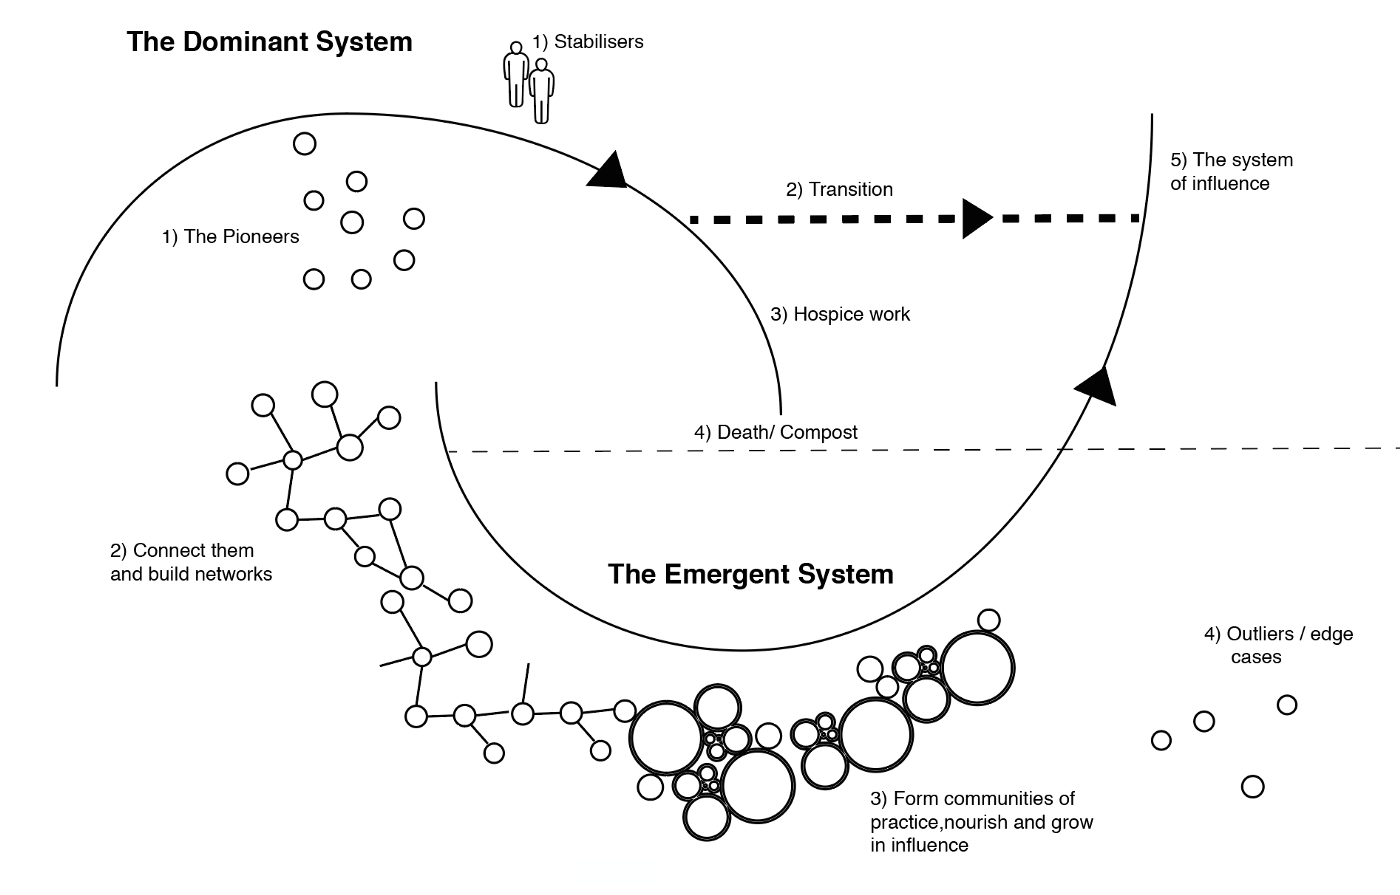 The Berkana Institute's Two Loop model showing the Dominant System and the Emergent System